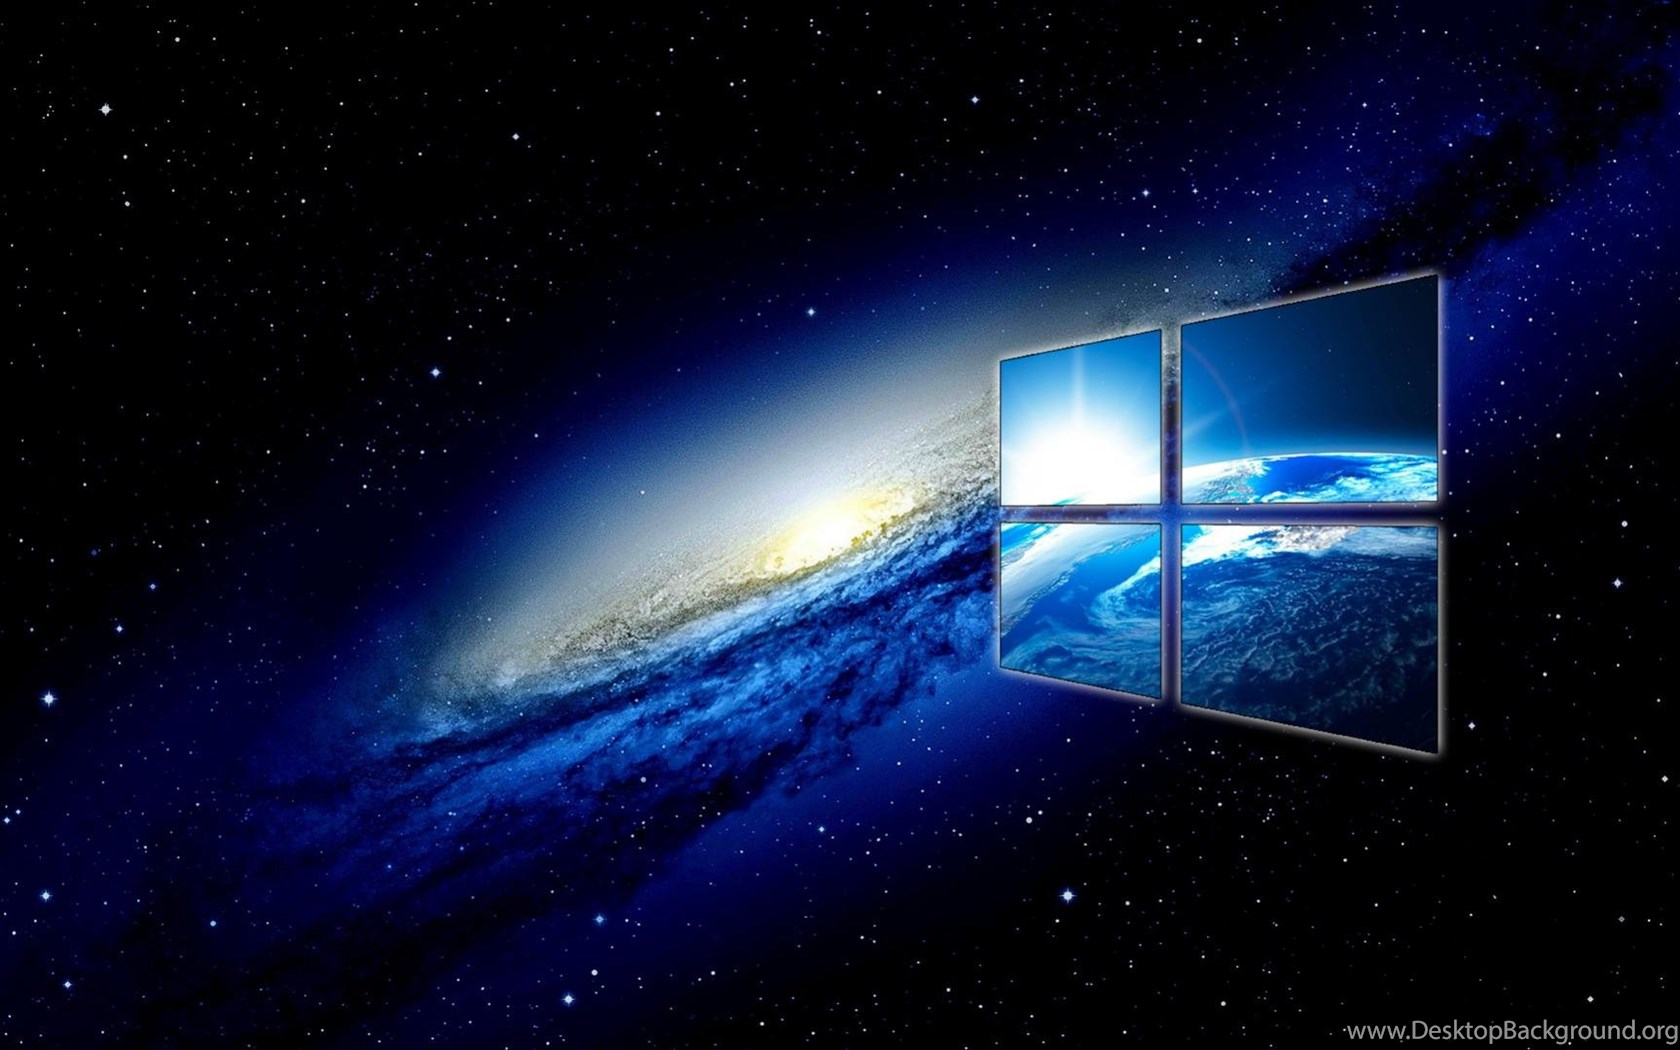 Other wallpaper windows 10 free wallpapers wallpapers hd - Hd wallpapers for pc windows ...